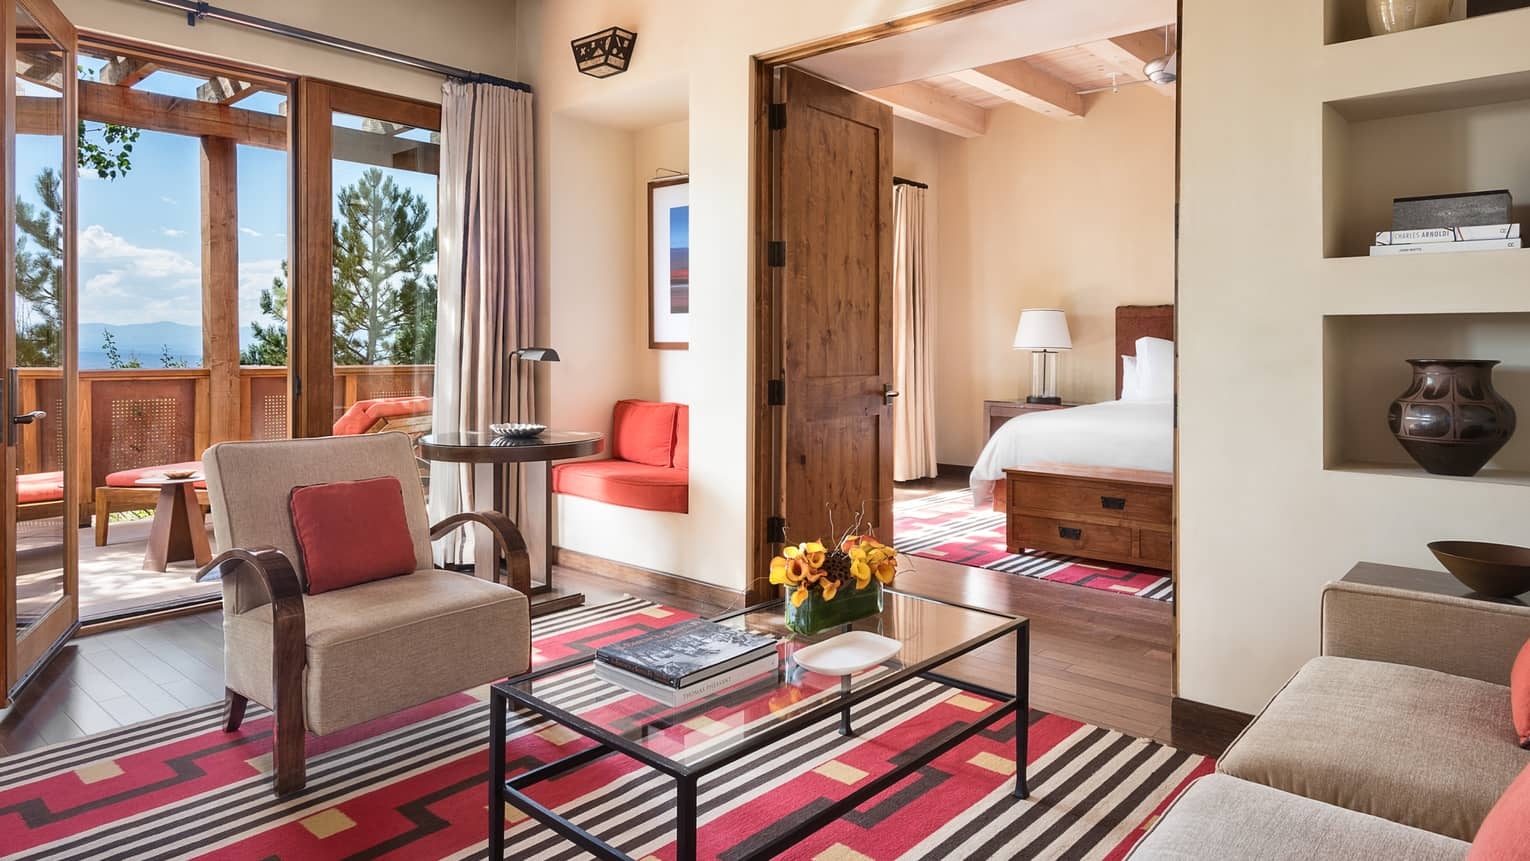 Sunset Suite living room, Southwestern-style rug, wood doors to balcony, bedroom